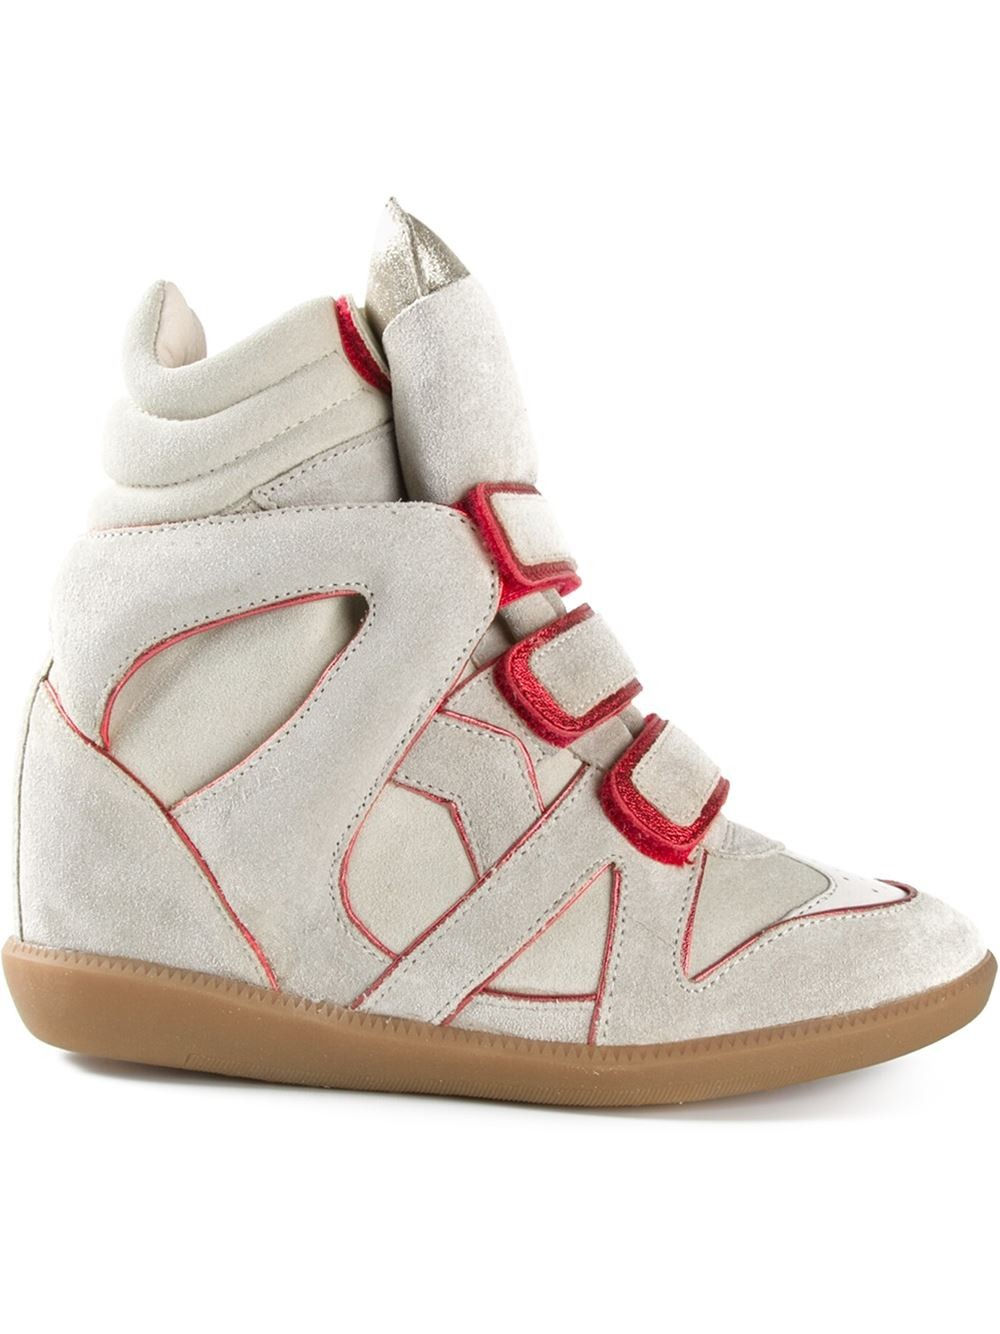 Isabel Marant Etoile Wila Beige Women's Wedge Sneakers